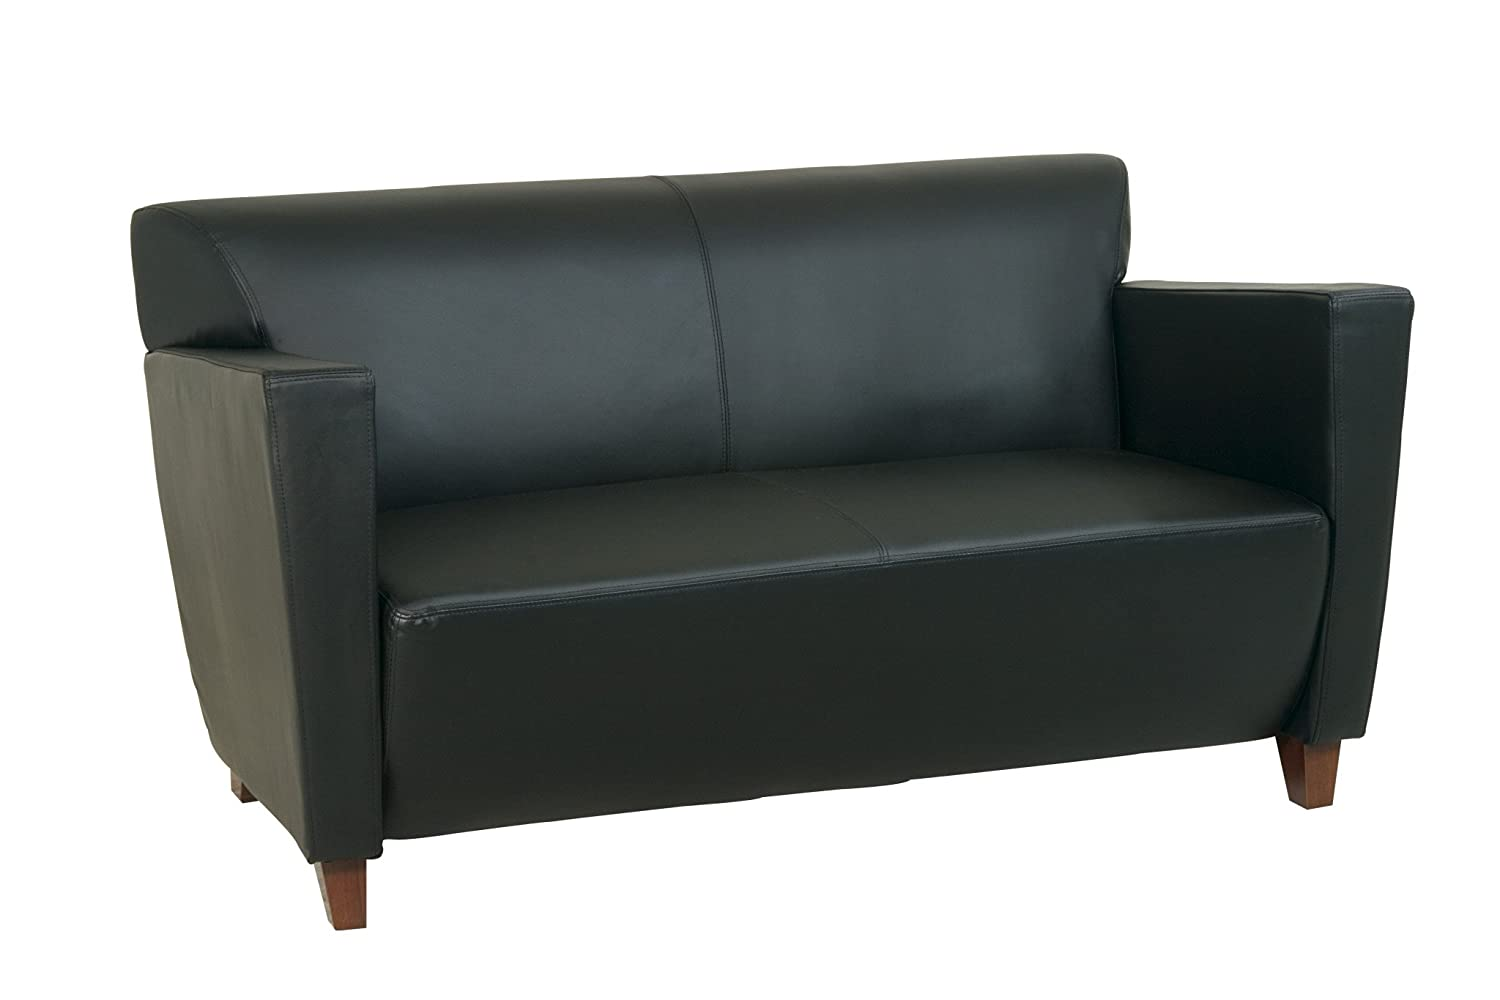 Office Star Modern Leather Sofa with Cherry Finish Legs, Black